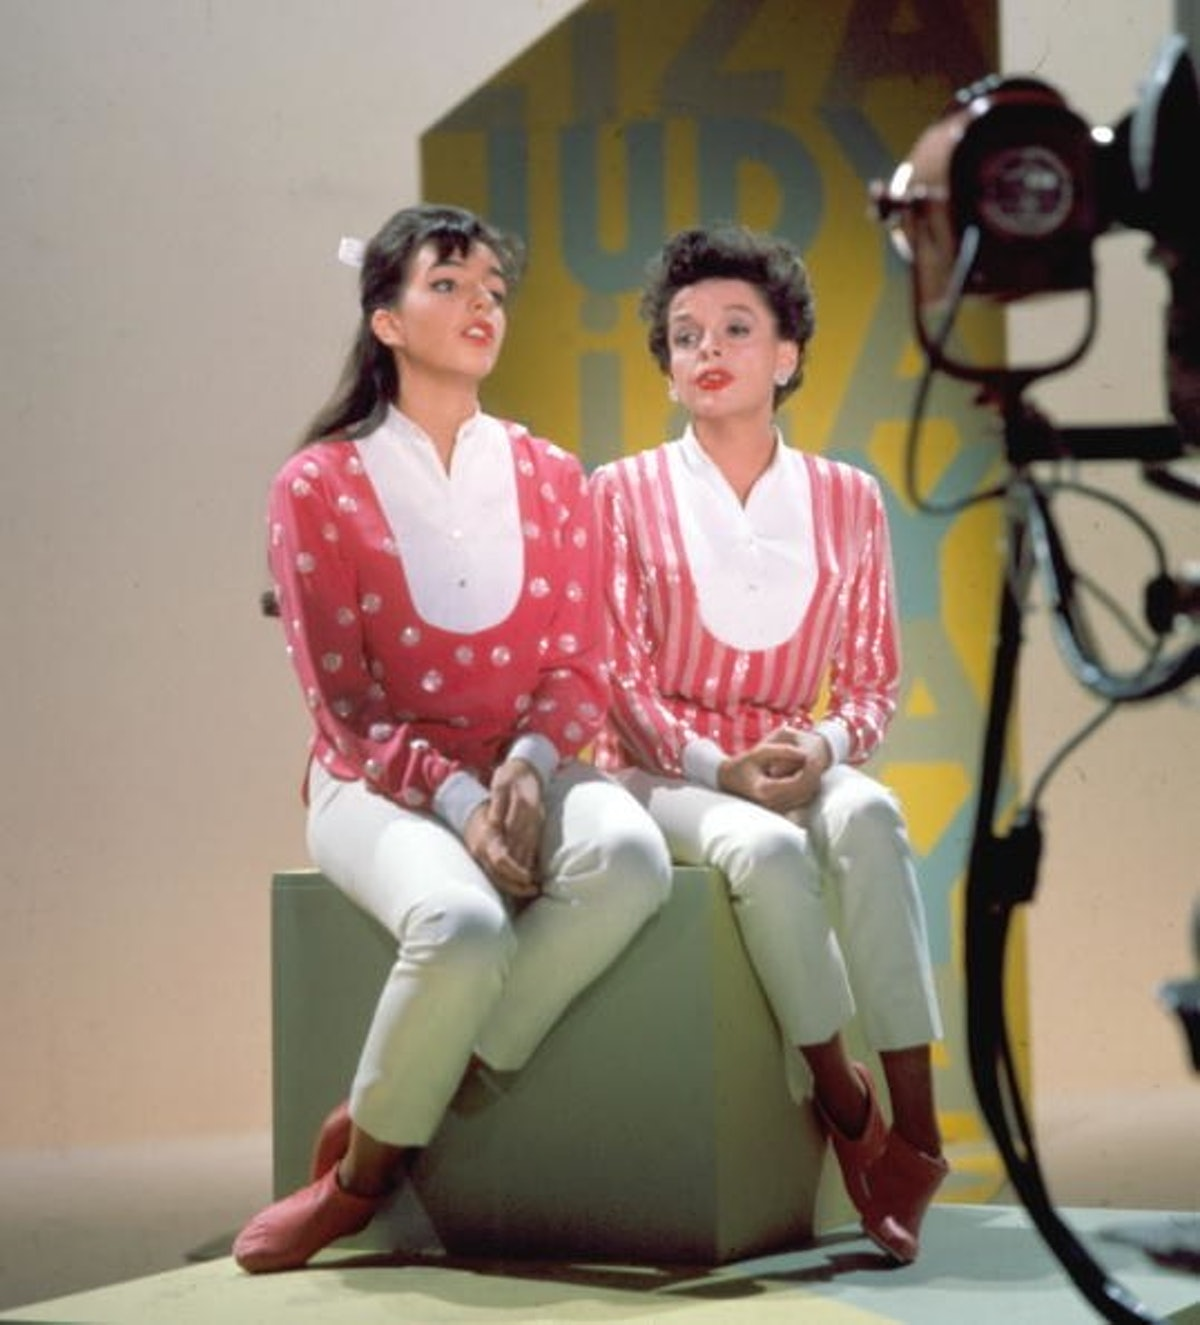 Liza next to Judy Garland in matching sparkly pink outfits